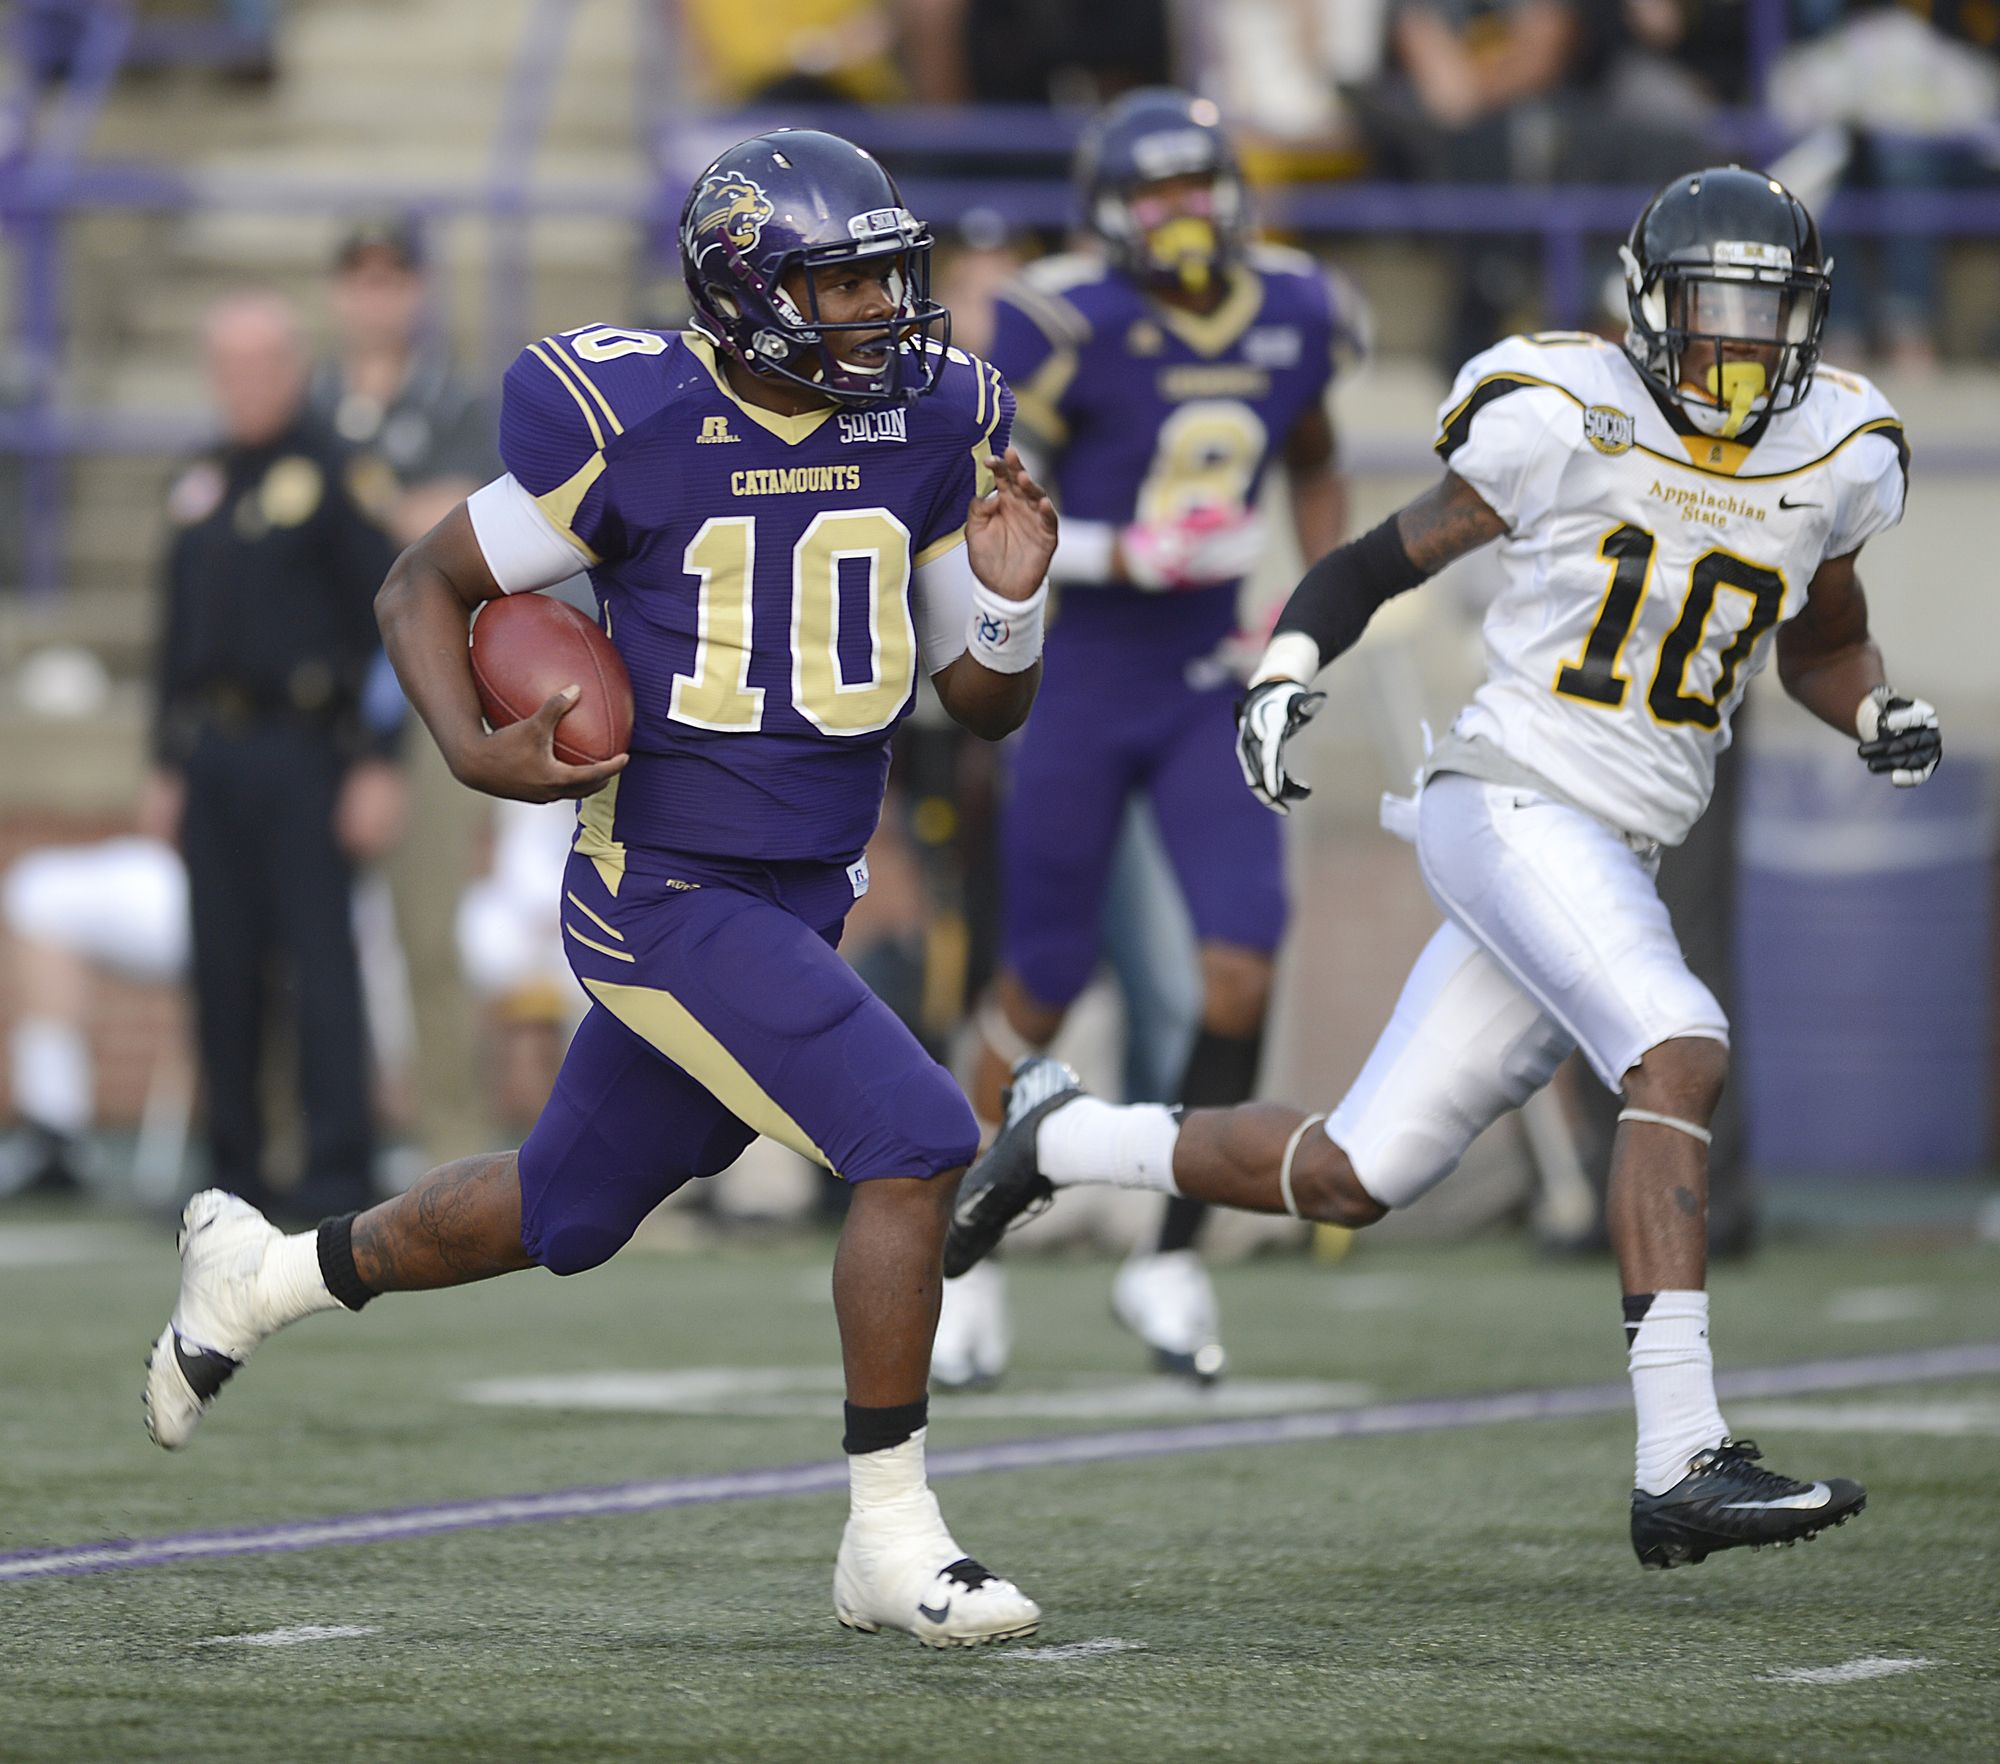 Catamount quarterback Troy Mitchell rushing for one of his